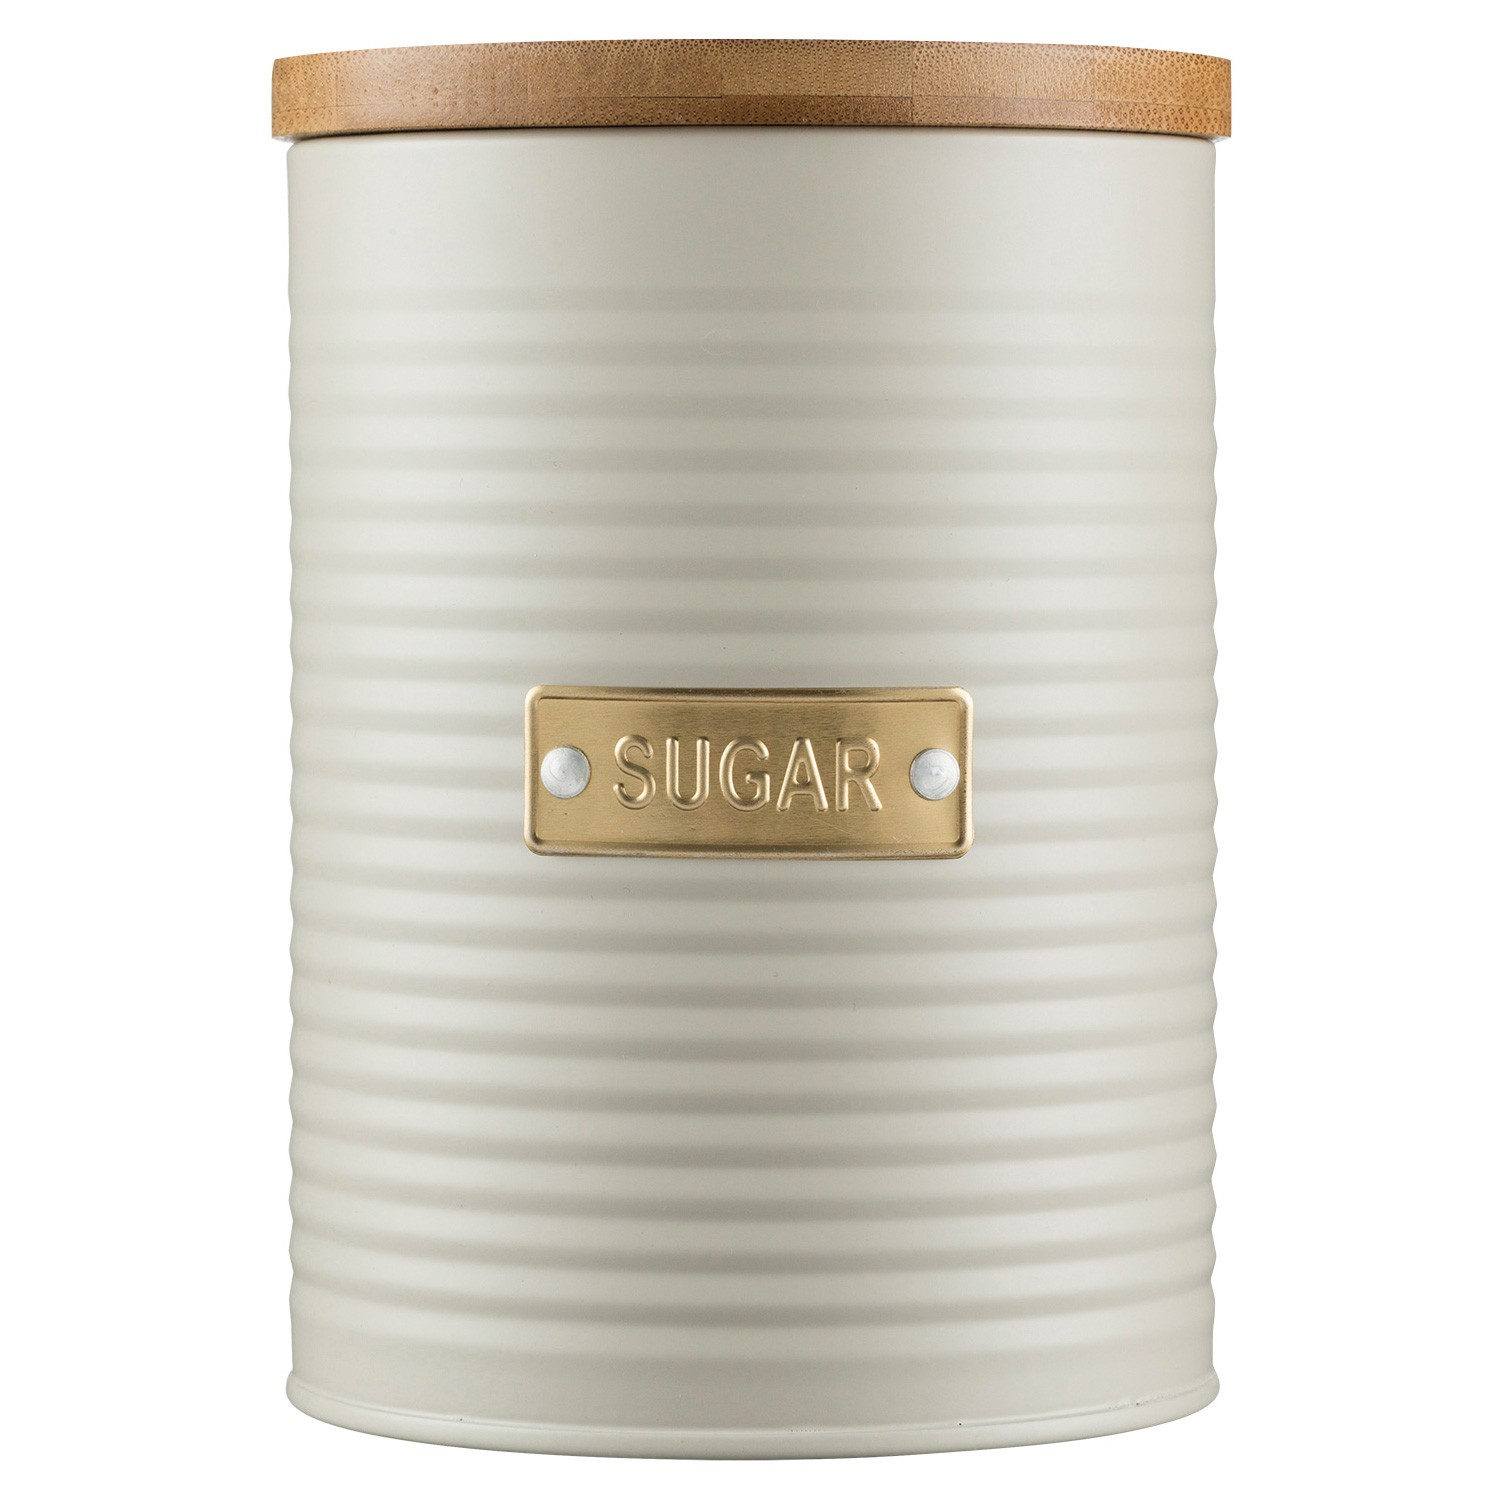 Typhoon Otto Sugar Canister, 1.4 Litre, Oatmeal